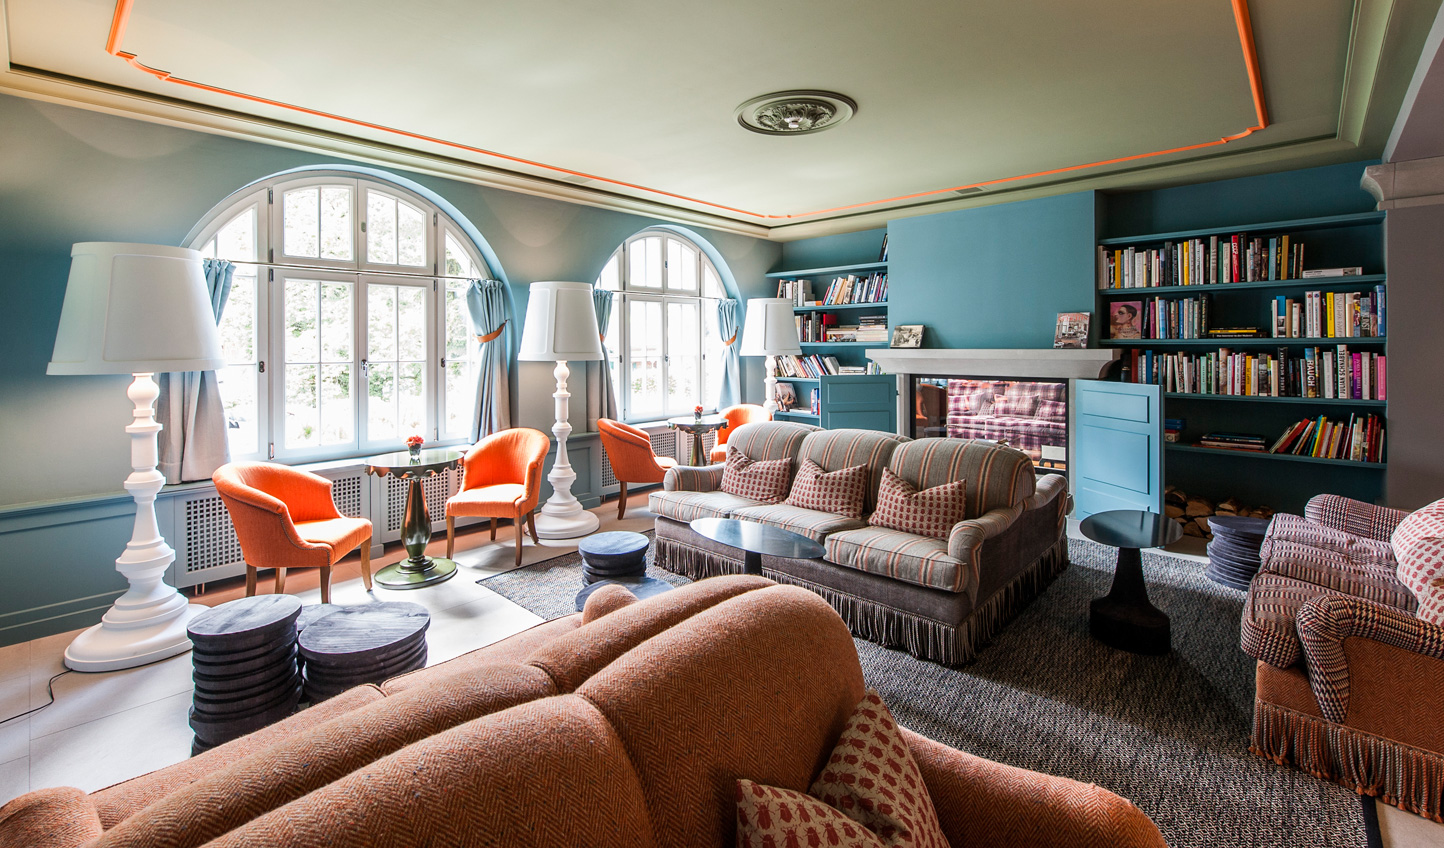 Bright colours and bold patterns bring a contemporary design to the classic hotel